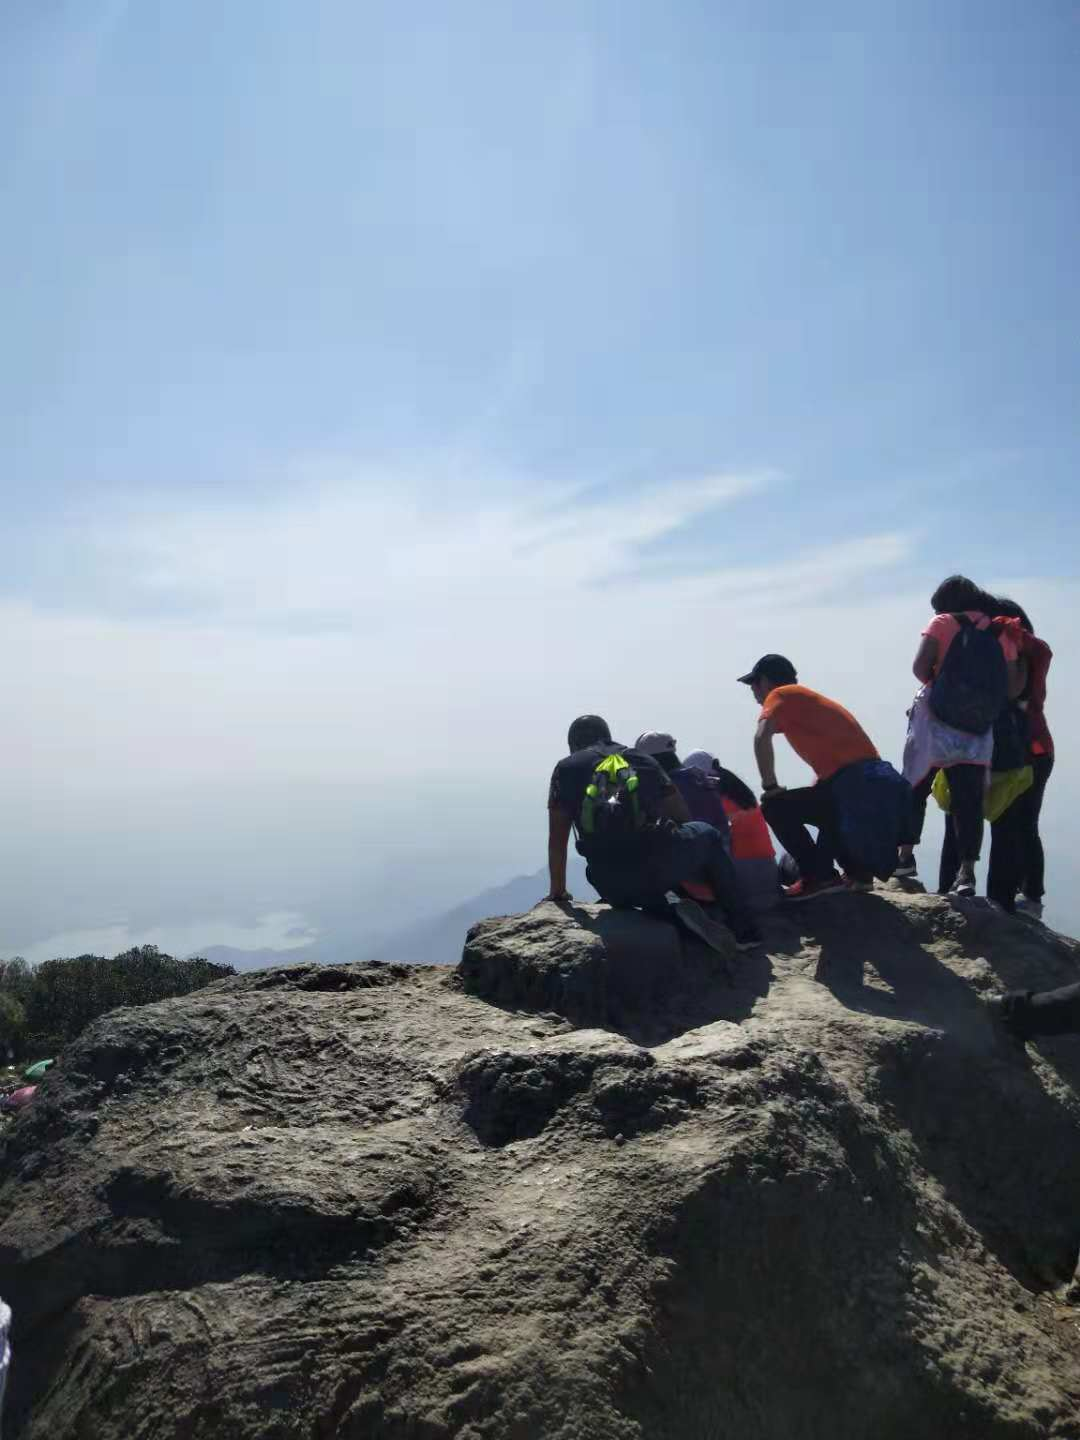 The peak of Wutong Mountain